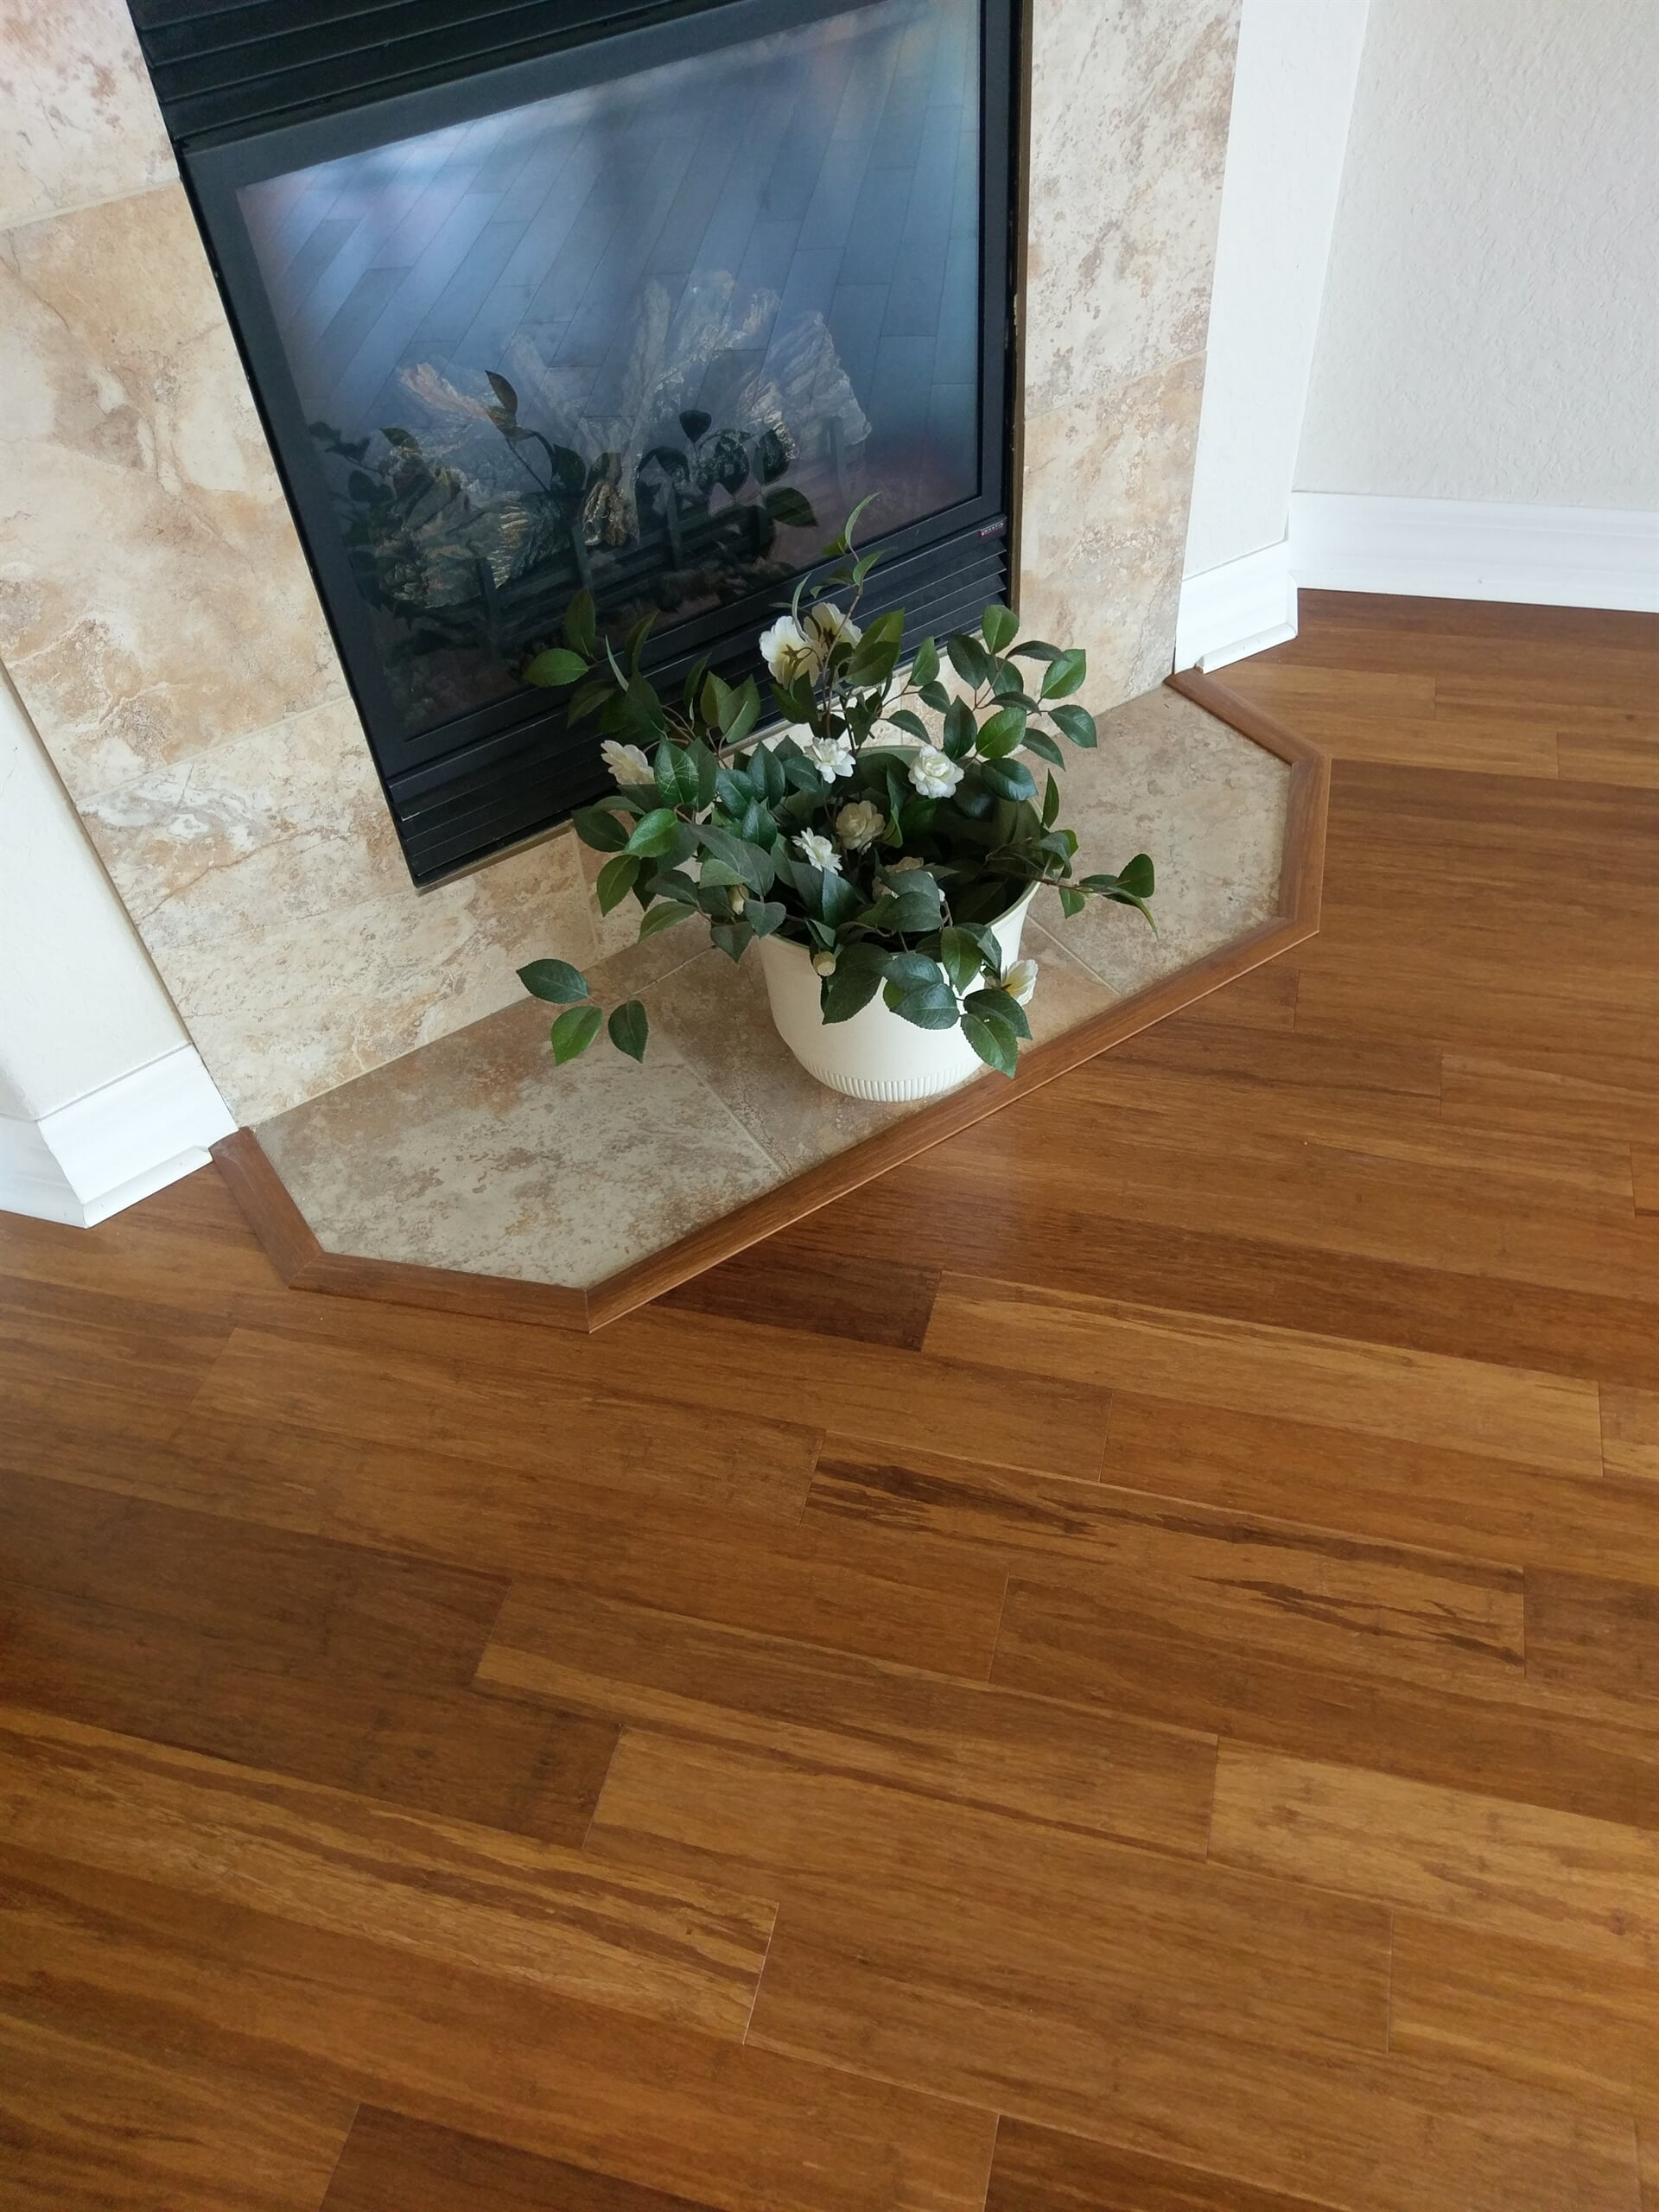 Fireplace surround and flooring trim in Clearwater, FL from Floor Depot